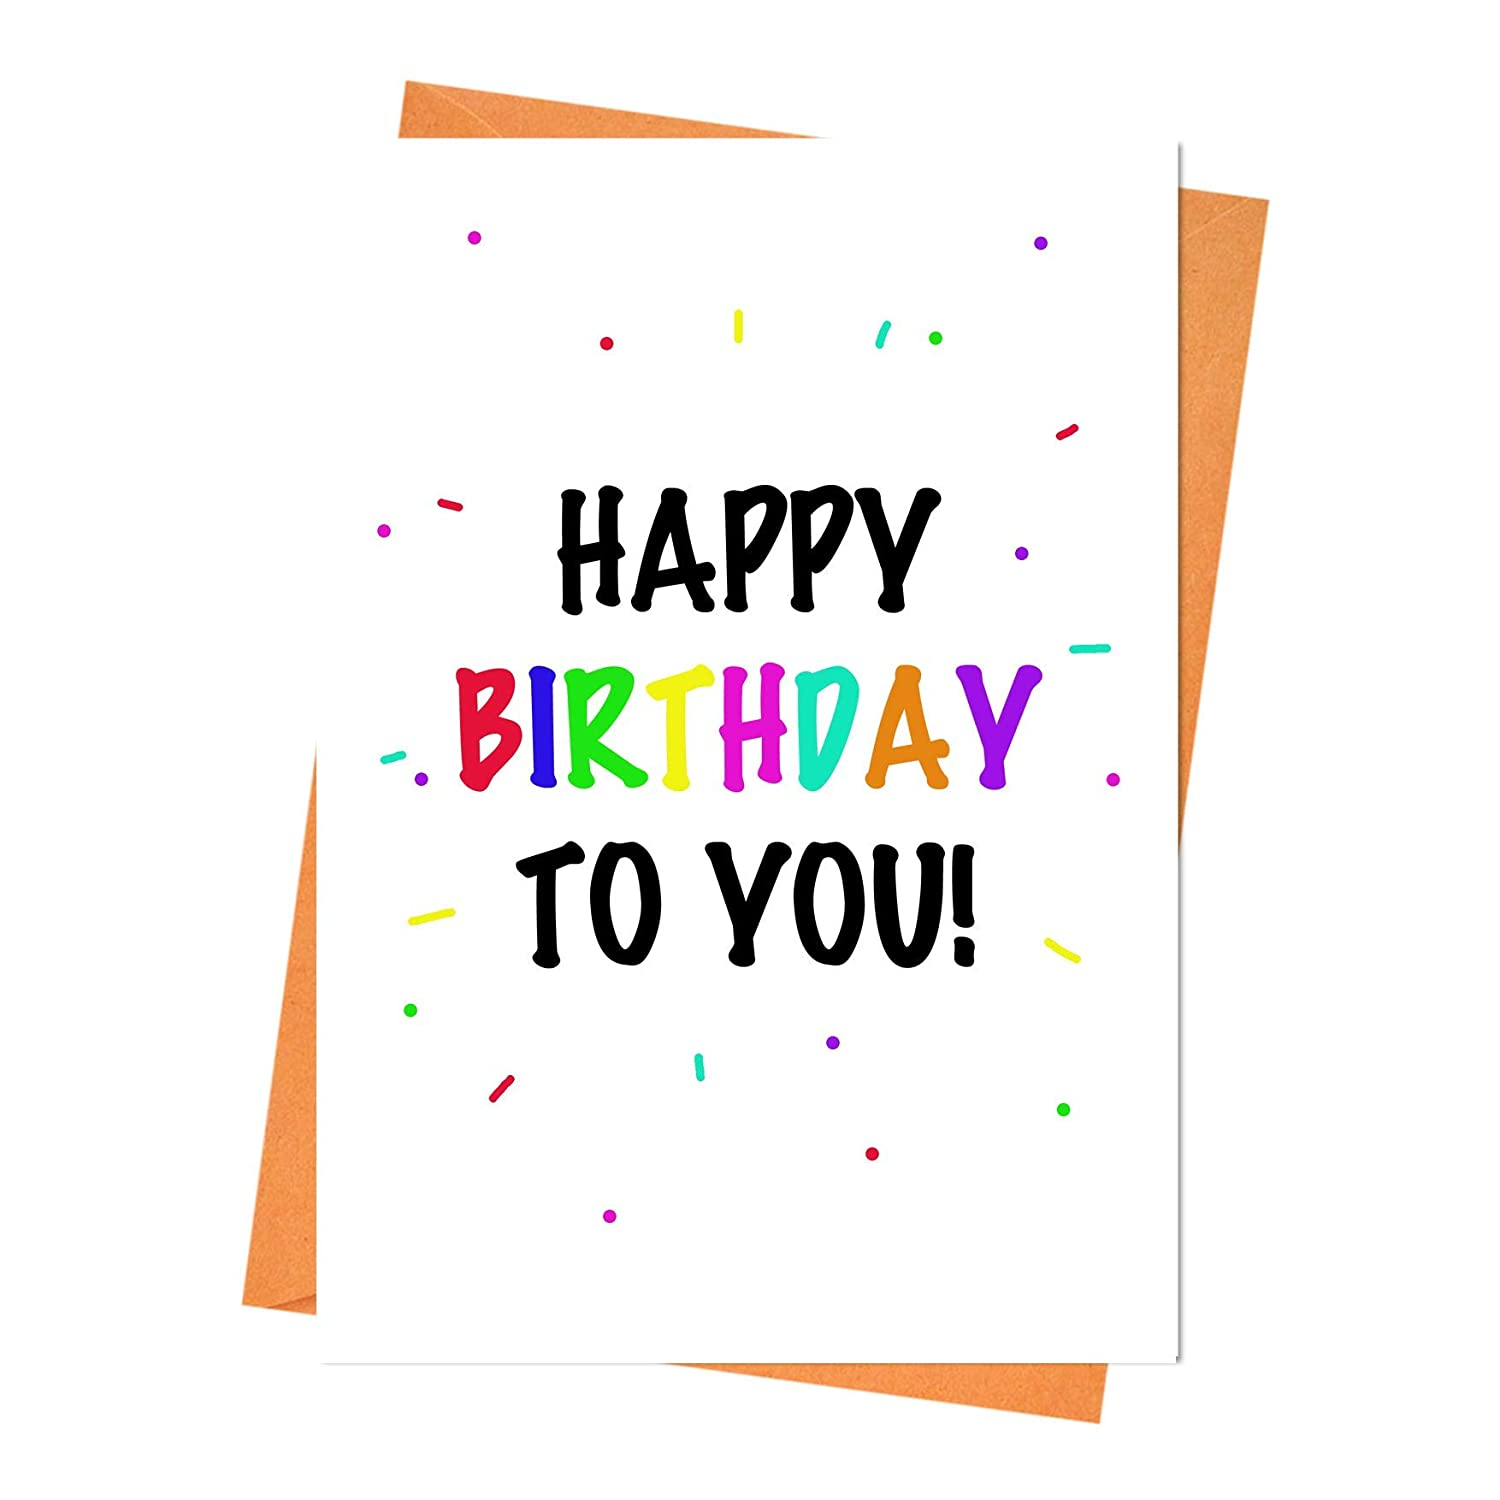 Ideal Birthday Card for Her Humourous Birthday Card Happy Birthday Card Funny Funny Birthday Card Birthday Card for Him Friend Birthday Card Joke Funny Animal Birthday Card